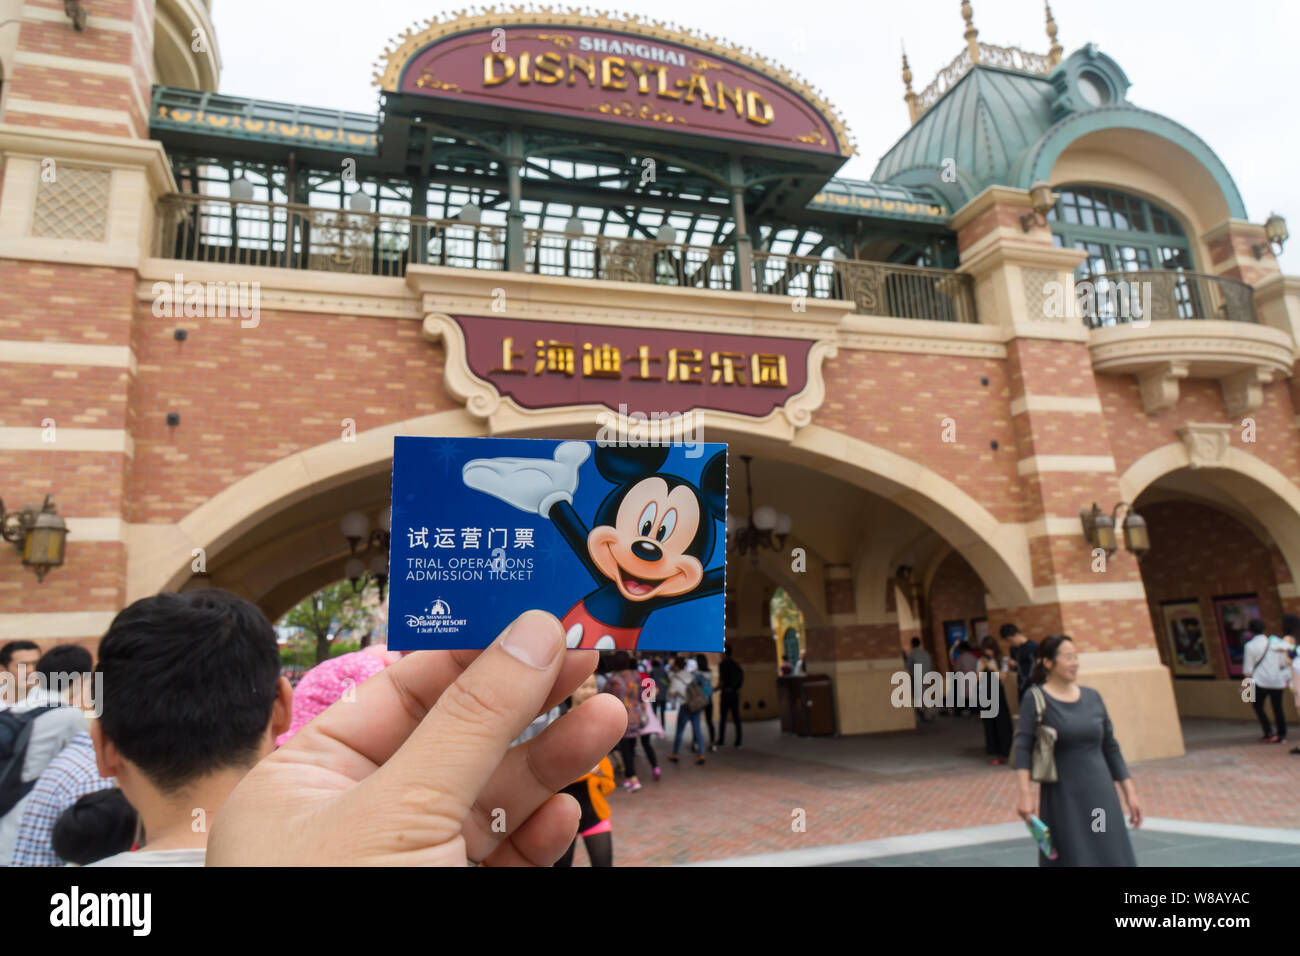 A tourist shows his trial operations admission ticket as he visits the Shanghai Disneyland during the trial operation at the Shanghai Disney Resort in Stock Photo